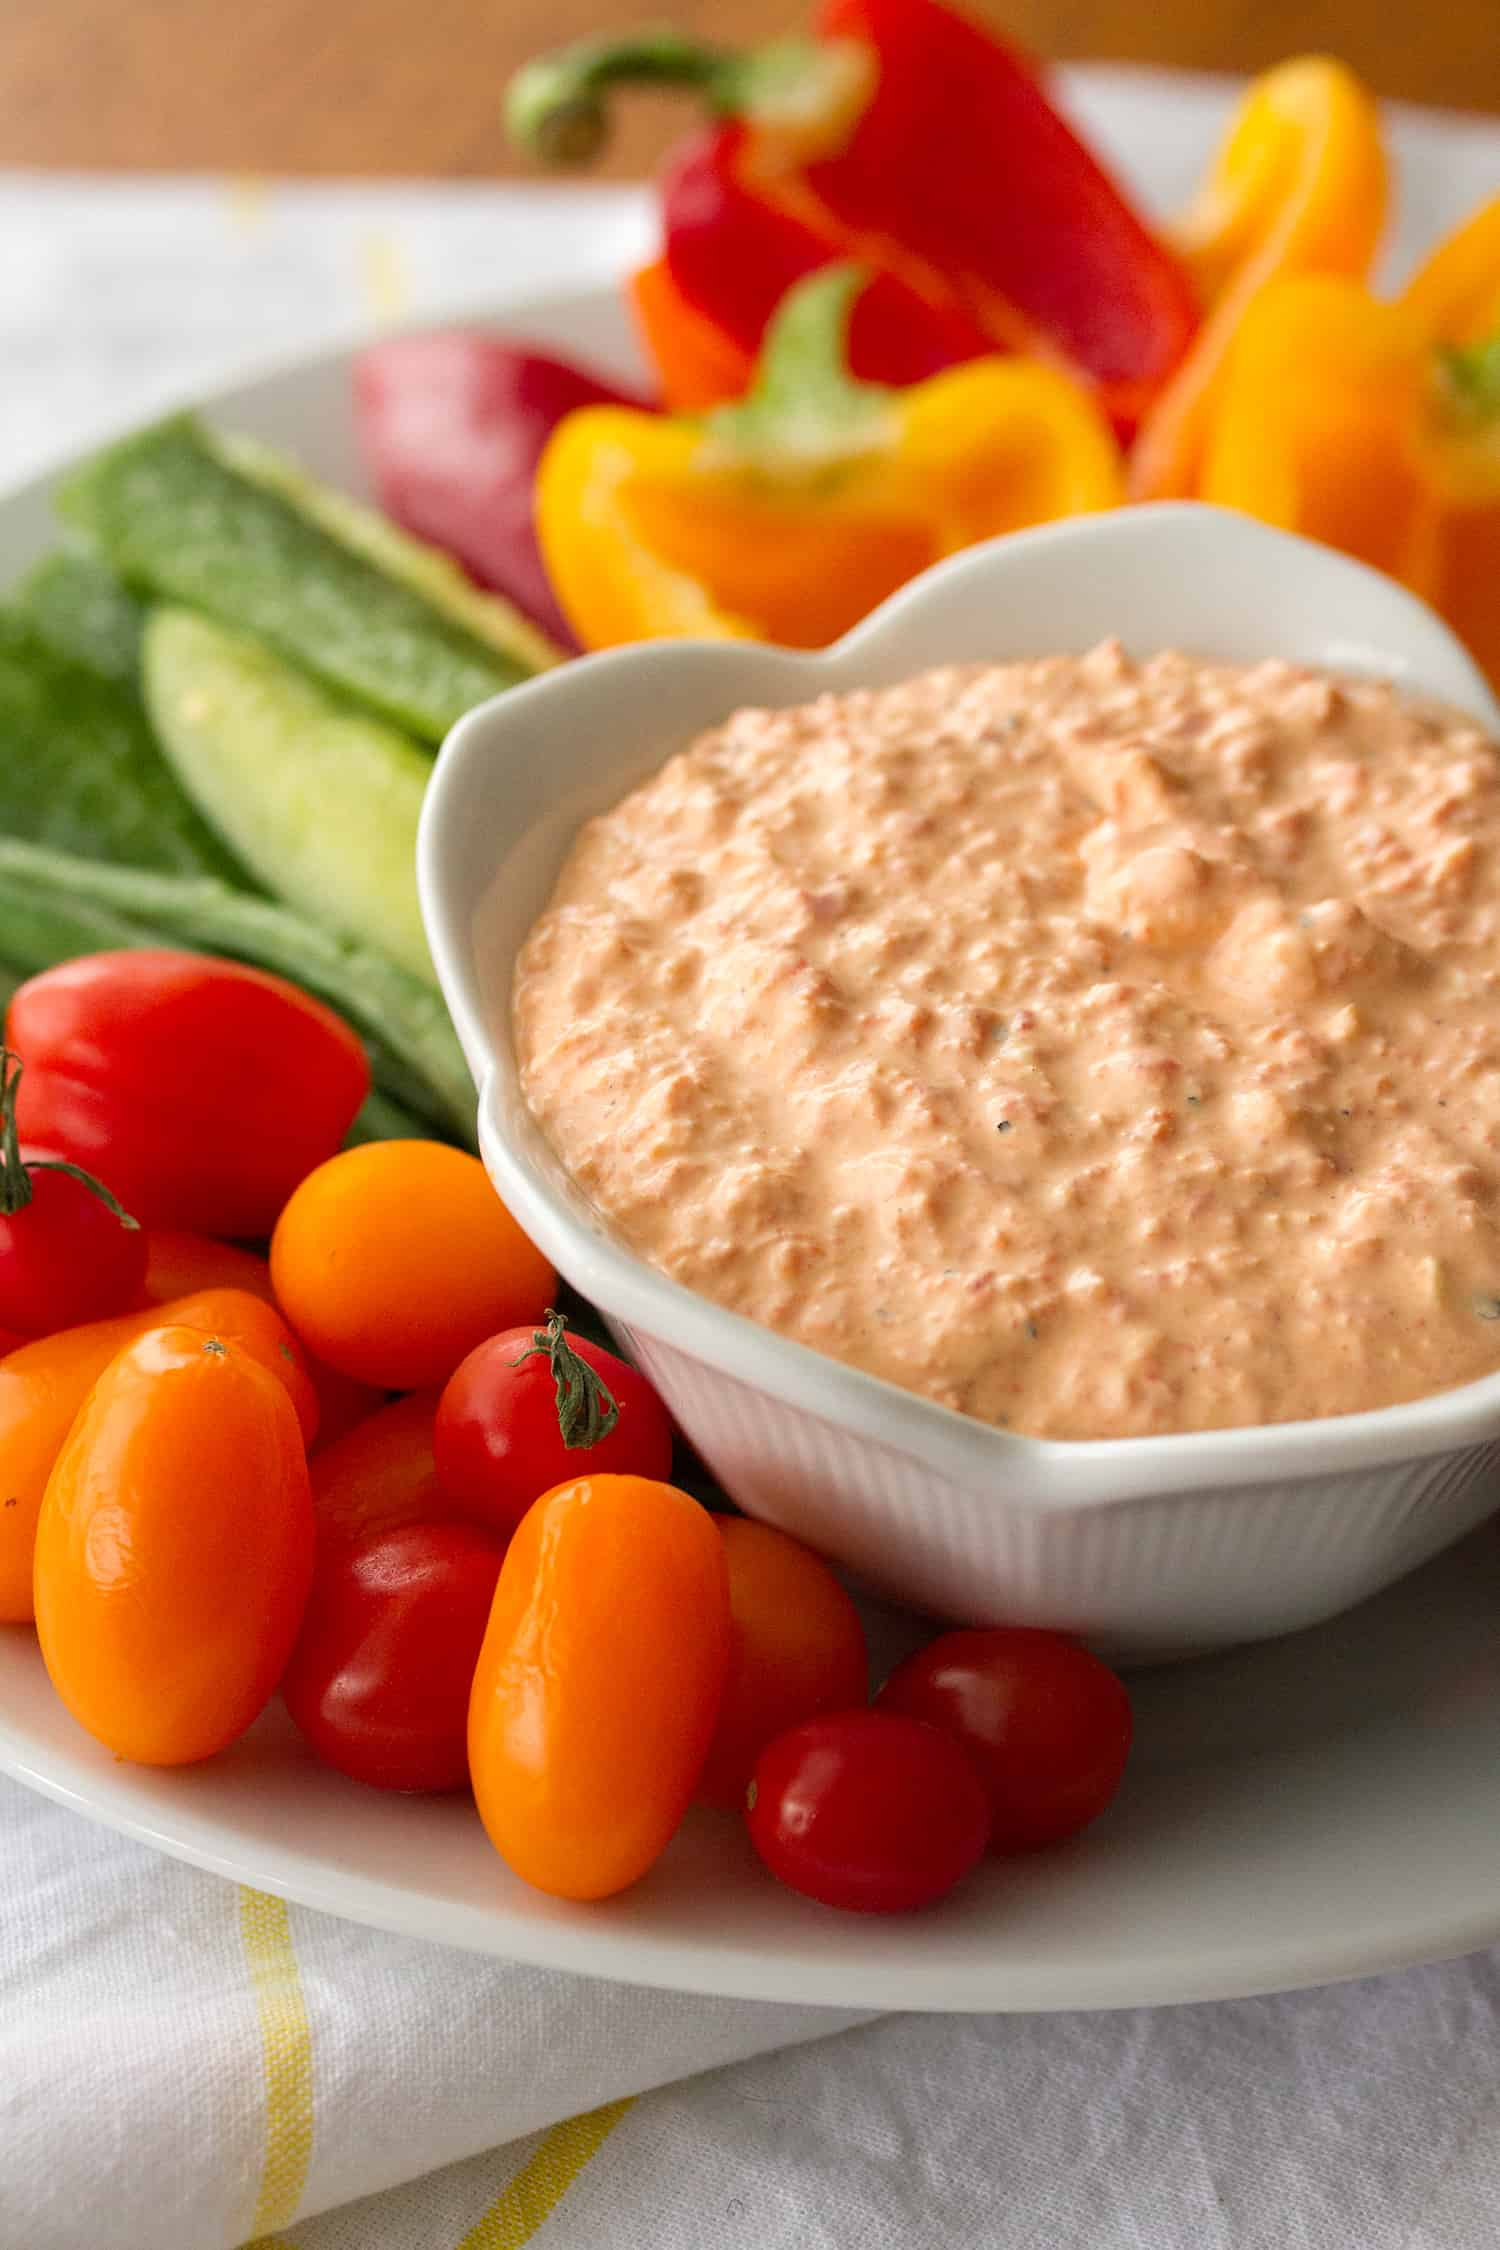 Sgt Pepper & the Hungry Hearts Band: Ridiculously Easy Roasted Red Pepper Dip